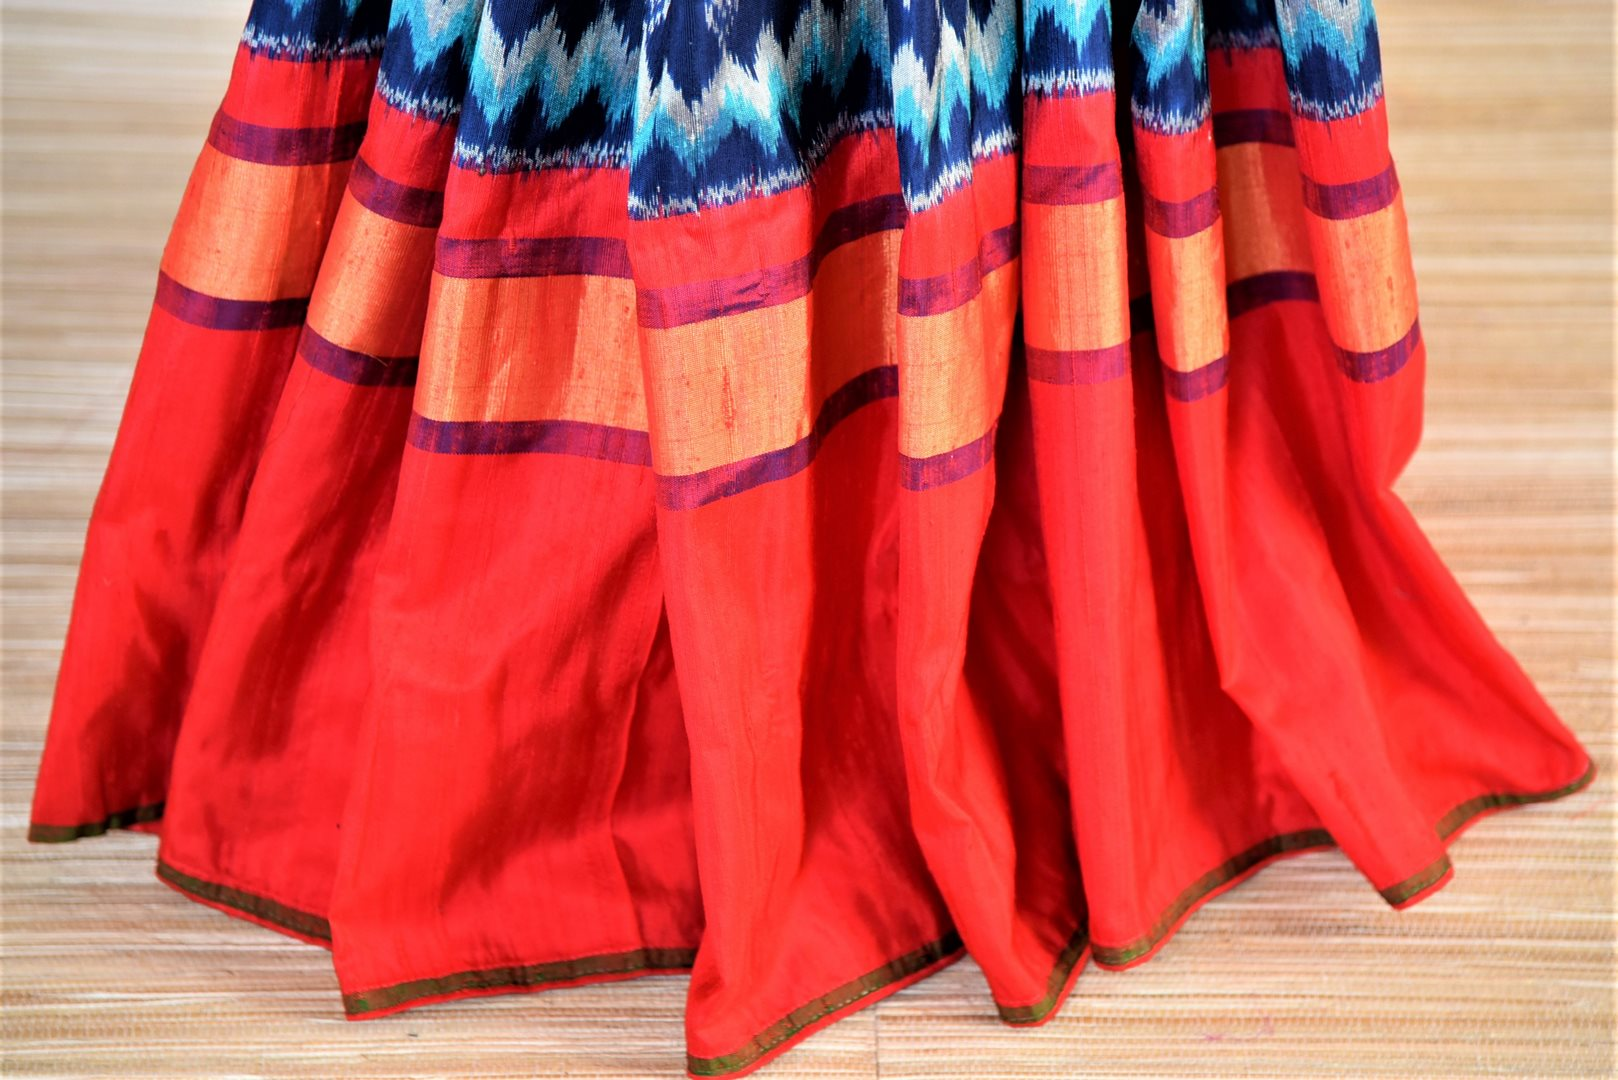 Buy beautiful blue patola silk saree online in USA with red border and embroidered red ikkat blouse. Be a vision of tradition and elegance on weddings and festivals with exquisite silk sarees, patola sarees, handwoven sarees from Pure Elegance Indian clothing store in USA.-blouse pallu